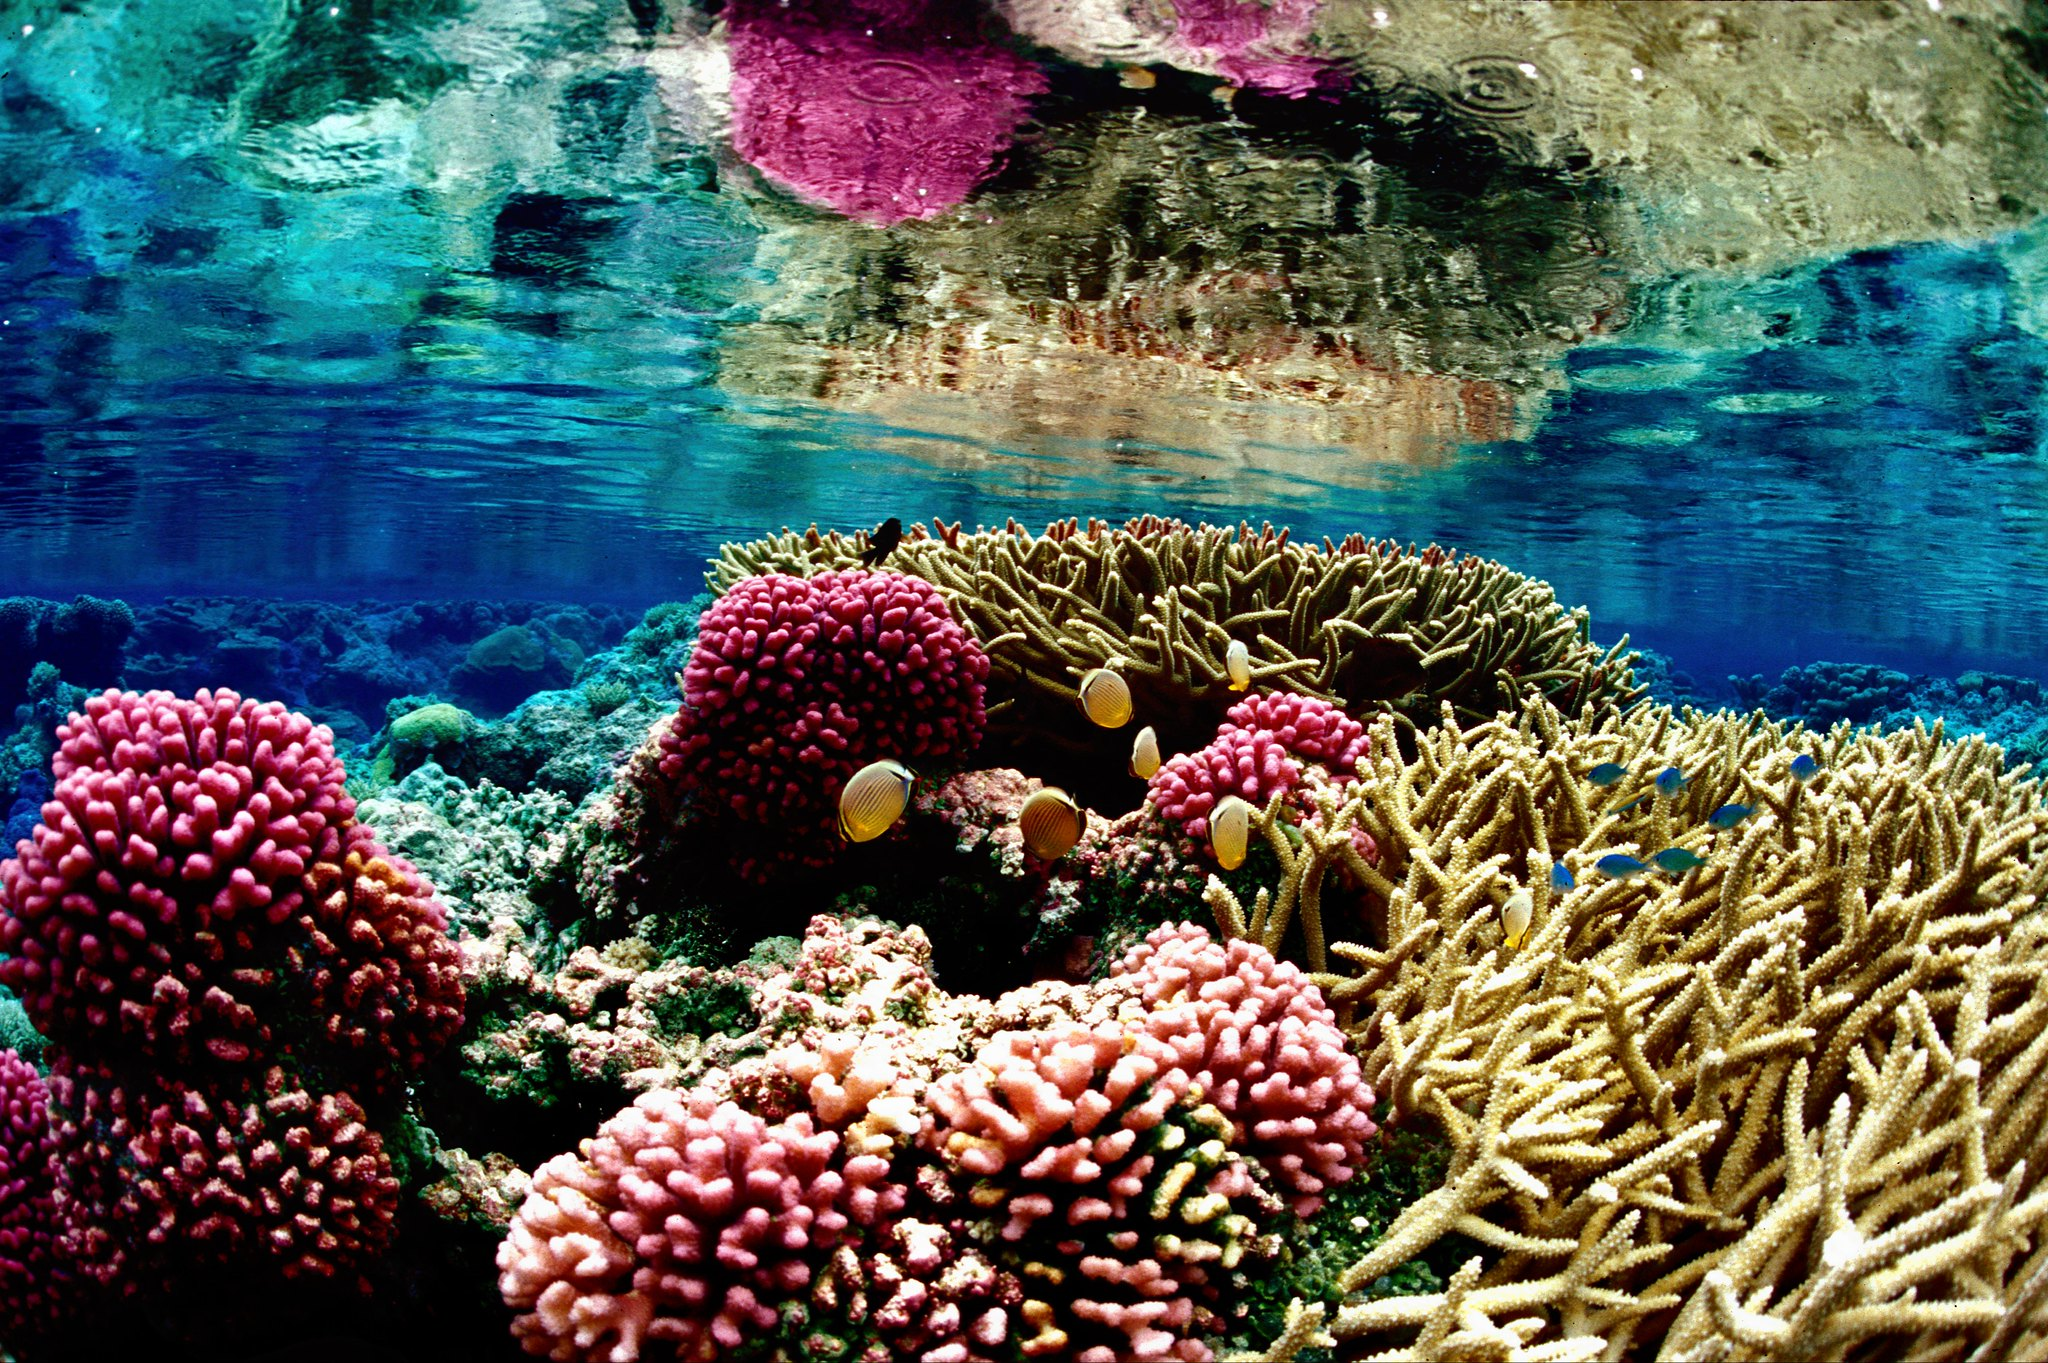 <p>Coral reef at Palmyra Atoll National Wildlife Refuge. Flickr/USFWS - Pacific Region</p>